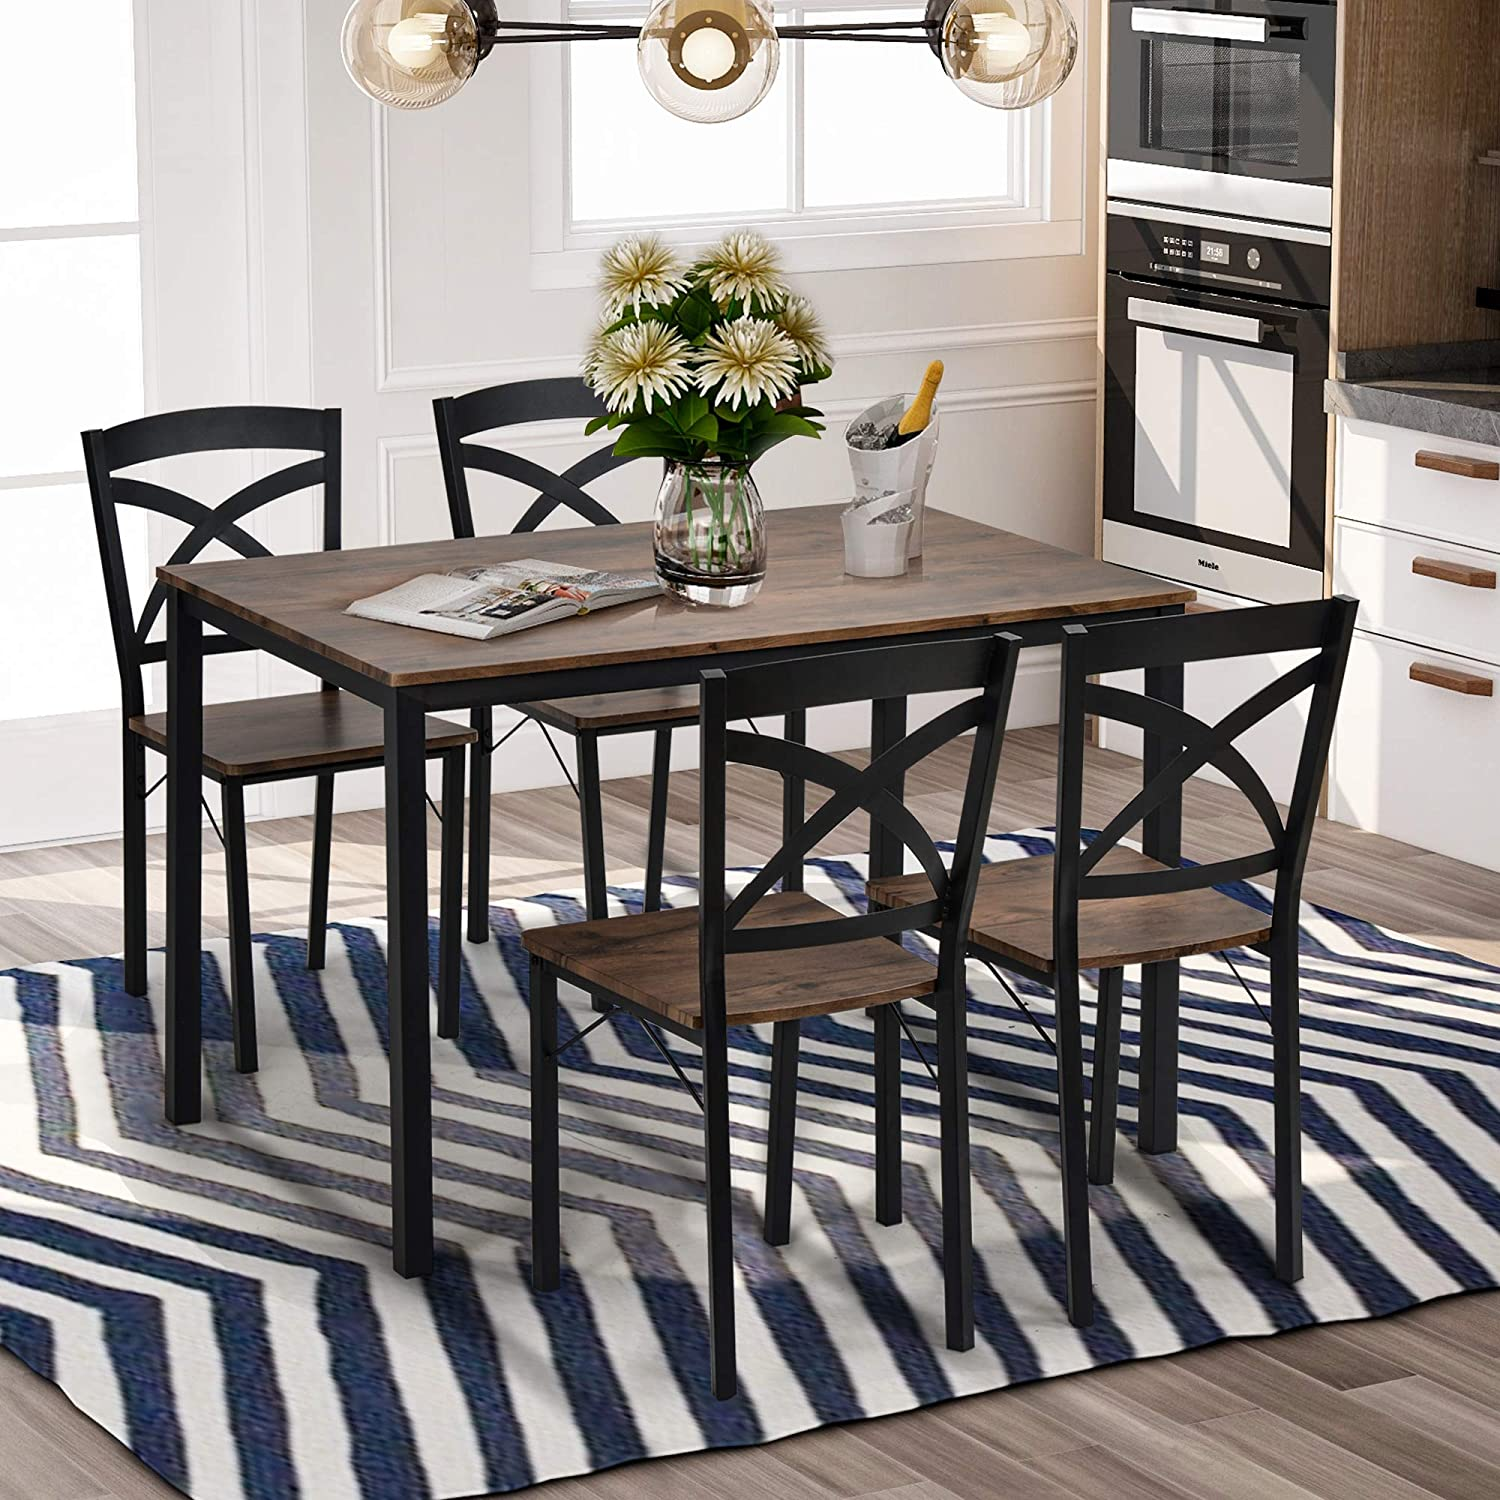 Goujxcy Time sale 5-Piece Price reduction Industrial Wooden Table Retro Set Dining